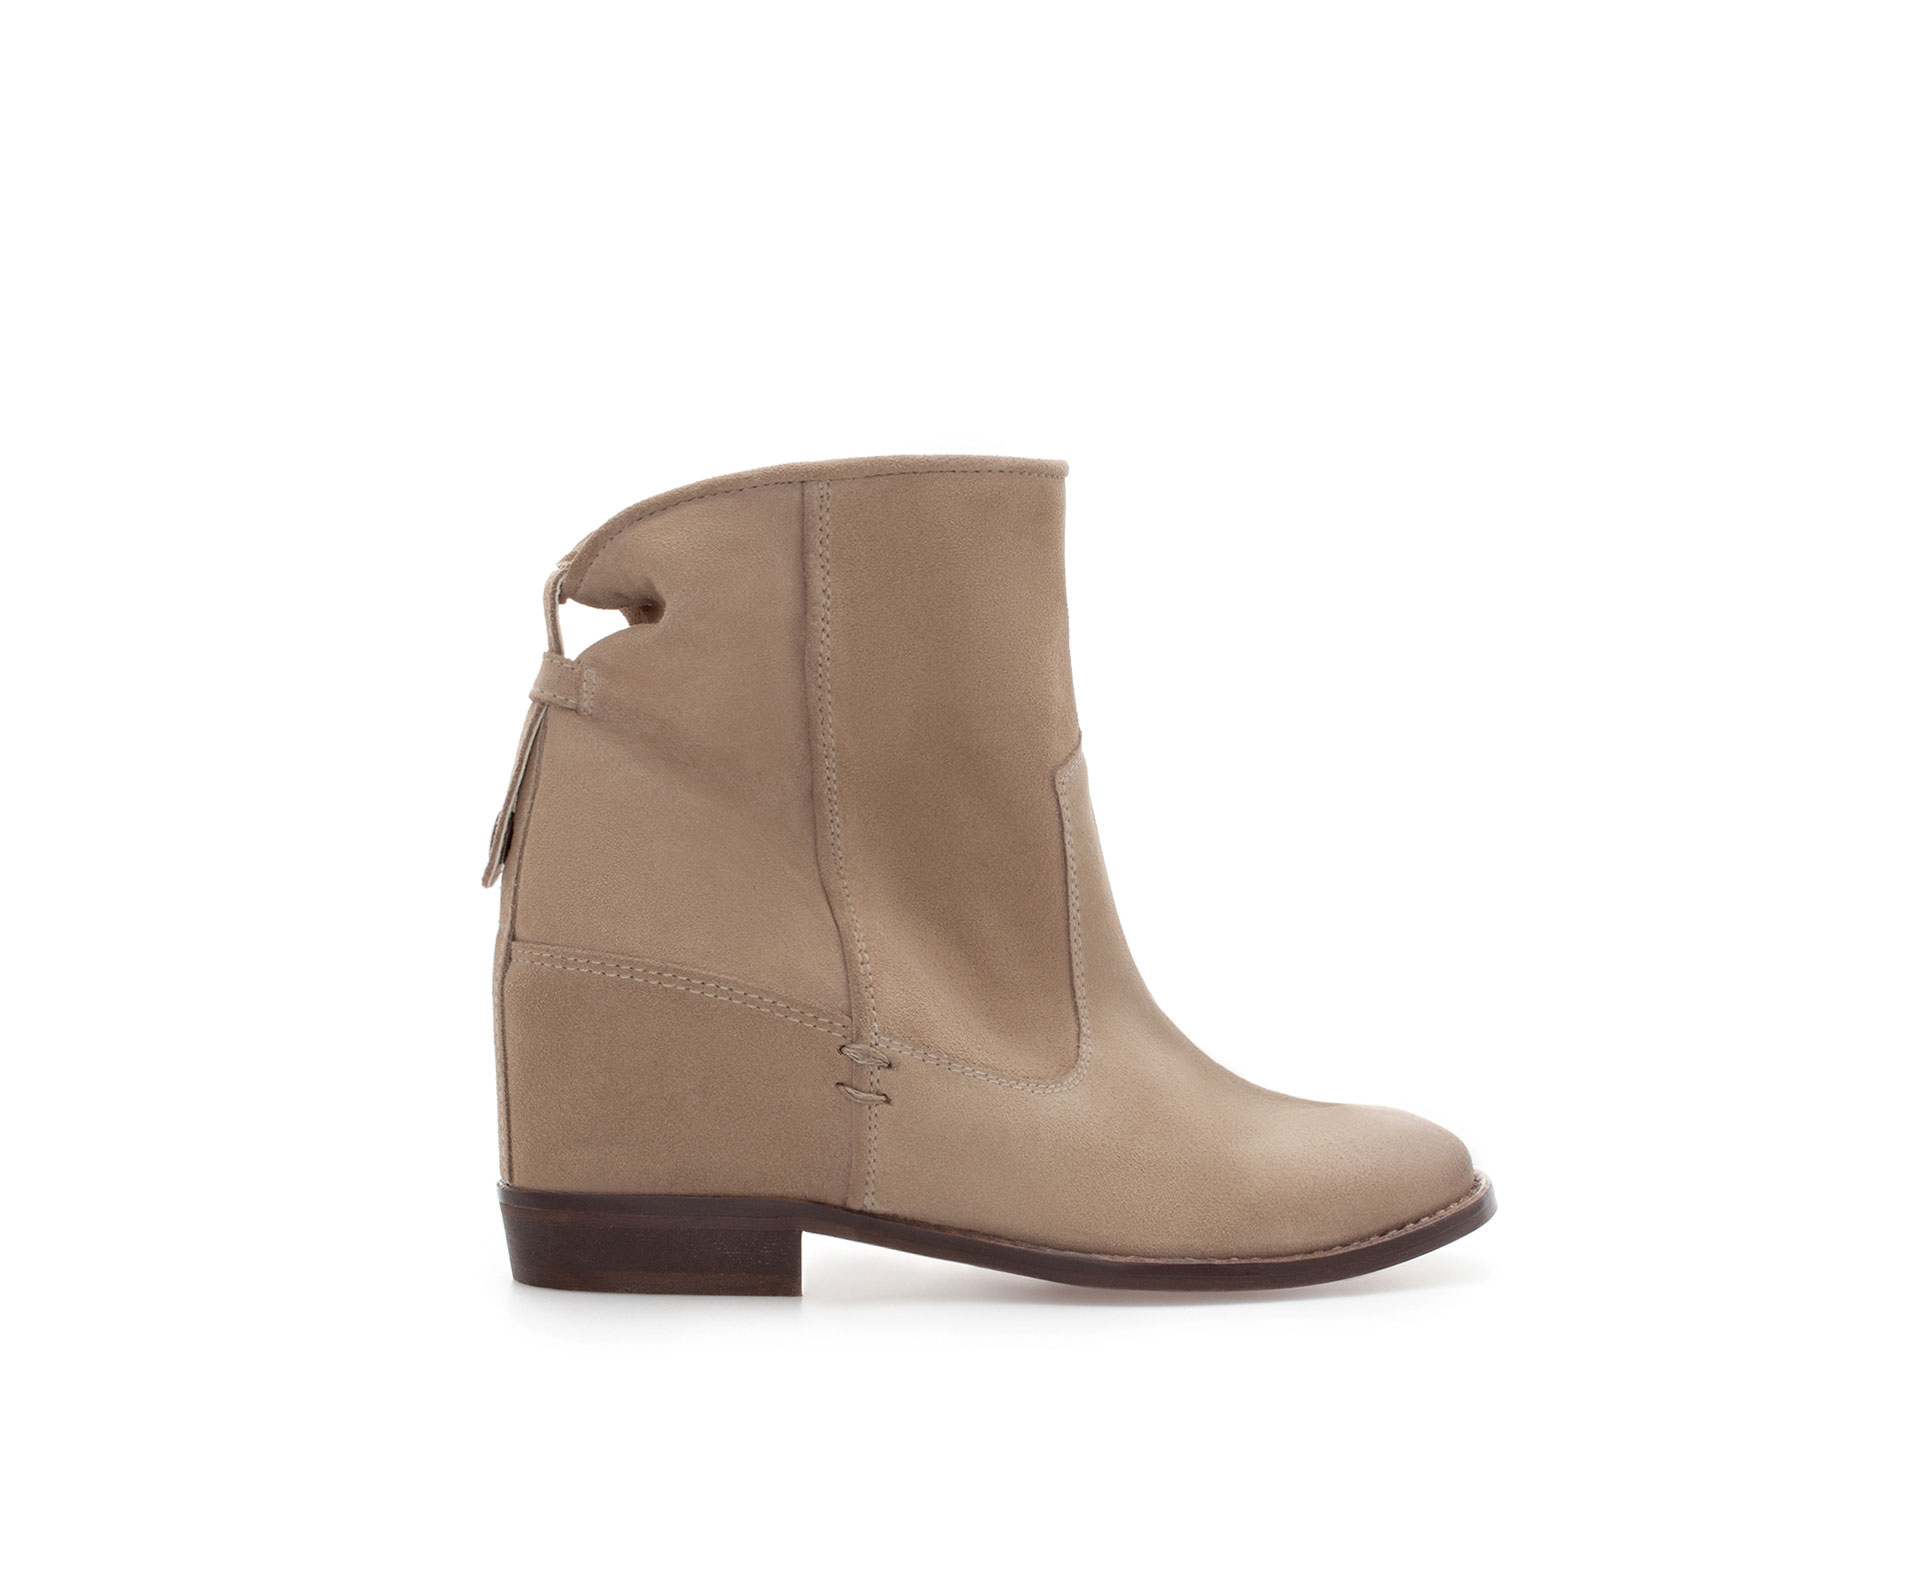 zara leather ankle boot with interior wedge in beige